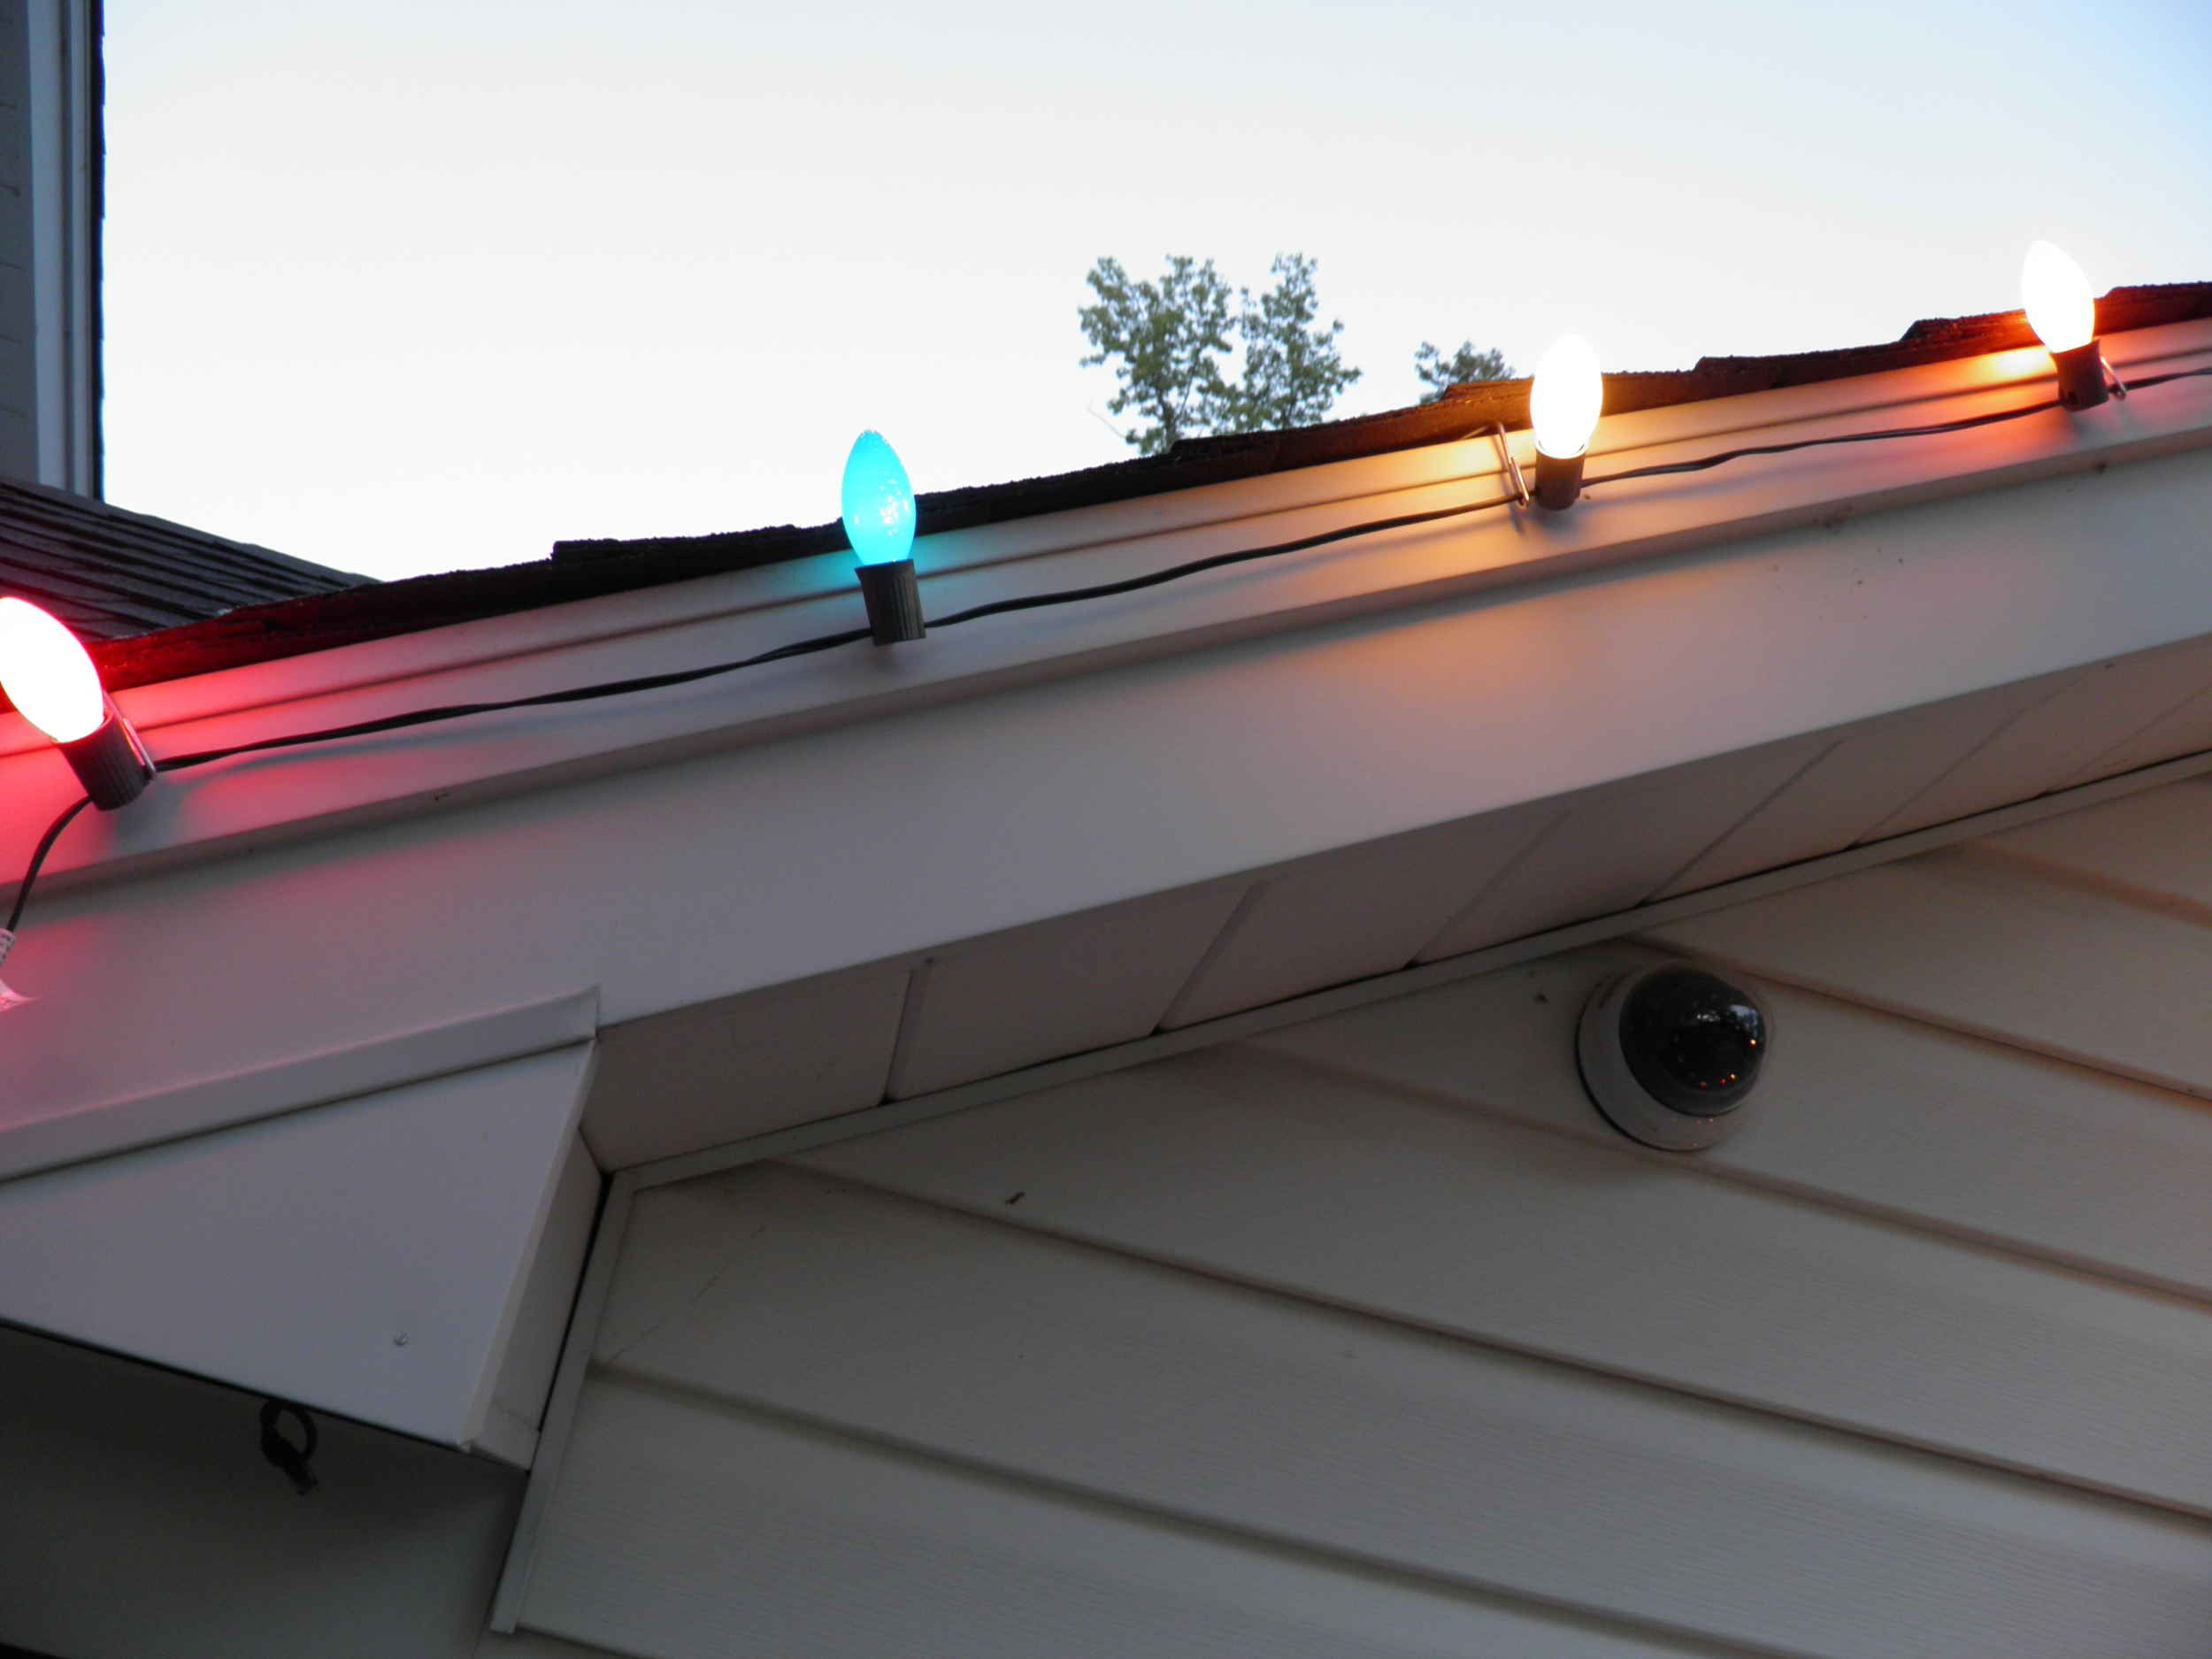 Using our new Christmas light hangers for shingled roof ...